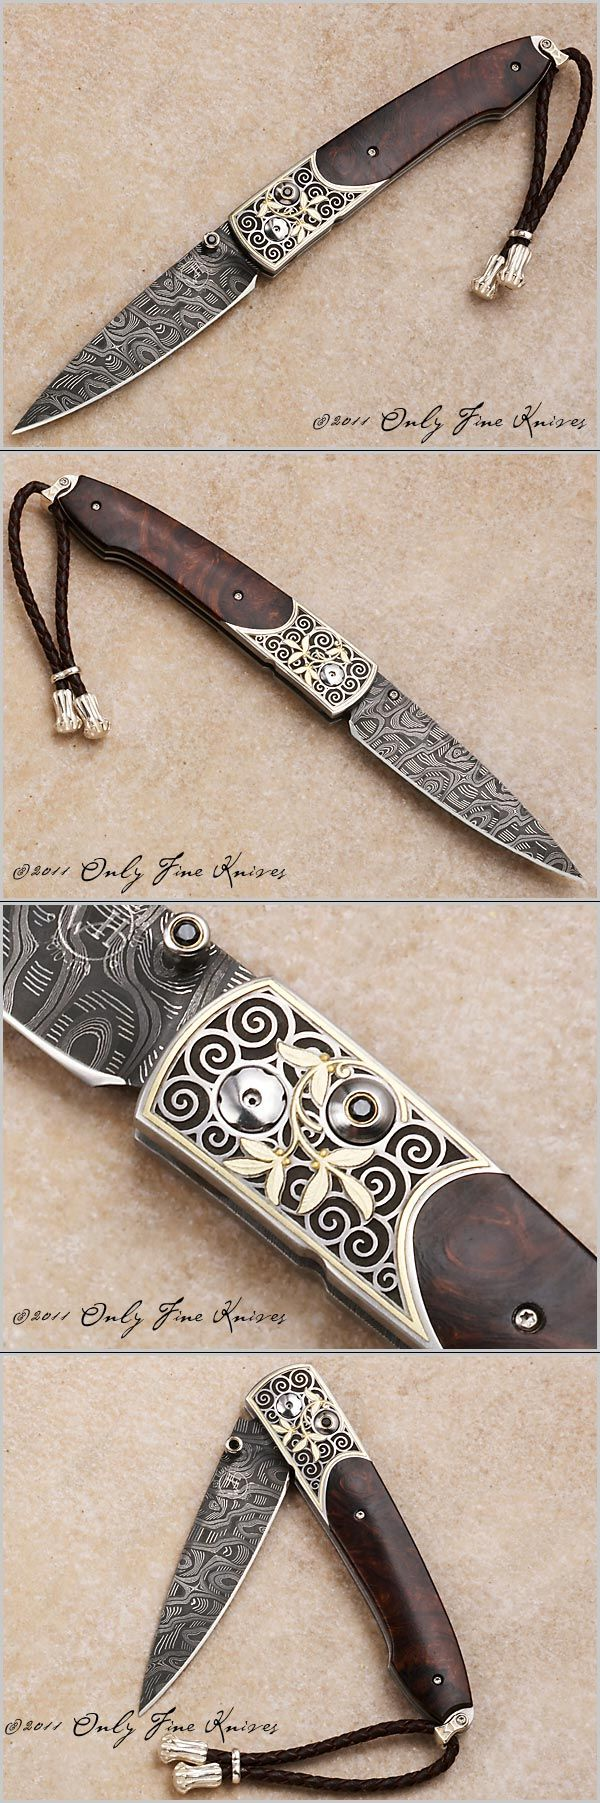 William Henry, B05 Custom 110310, Only Fine Knives..5000    Love this - beautiful and detailed